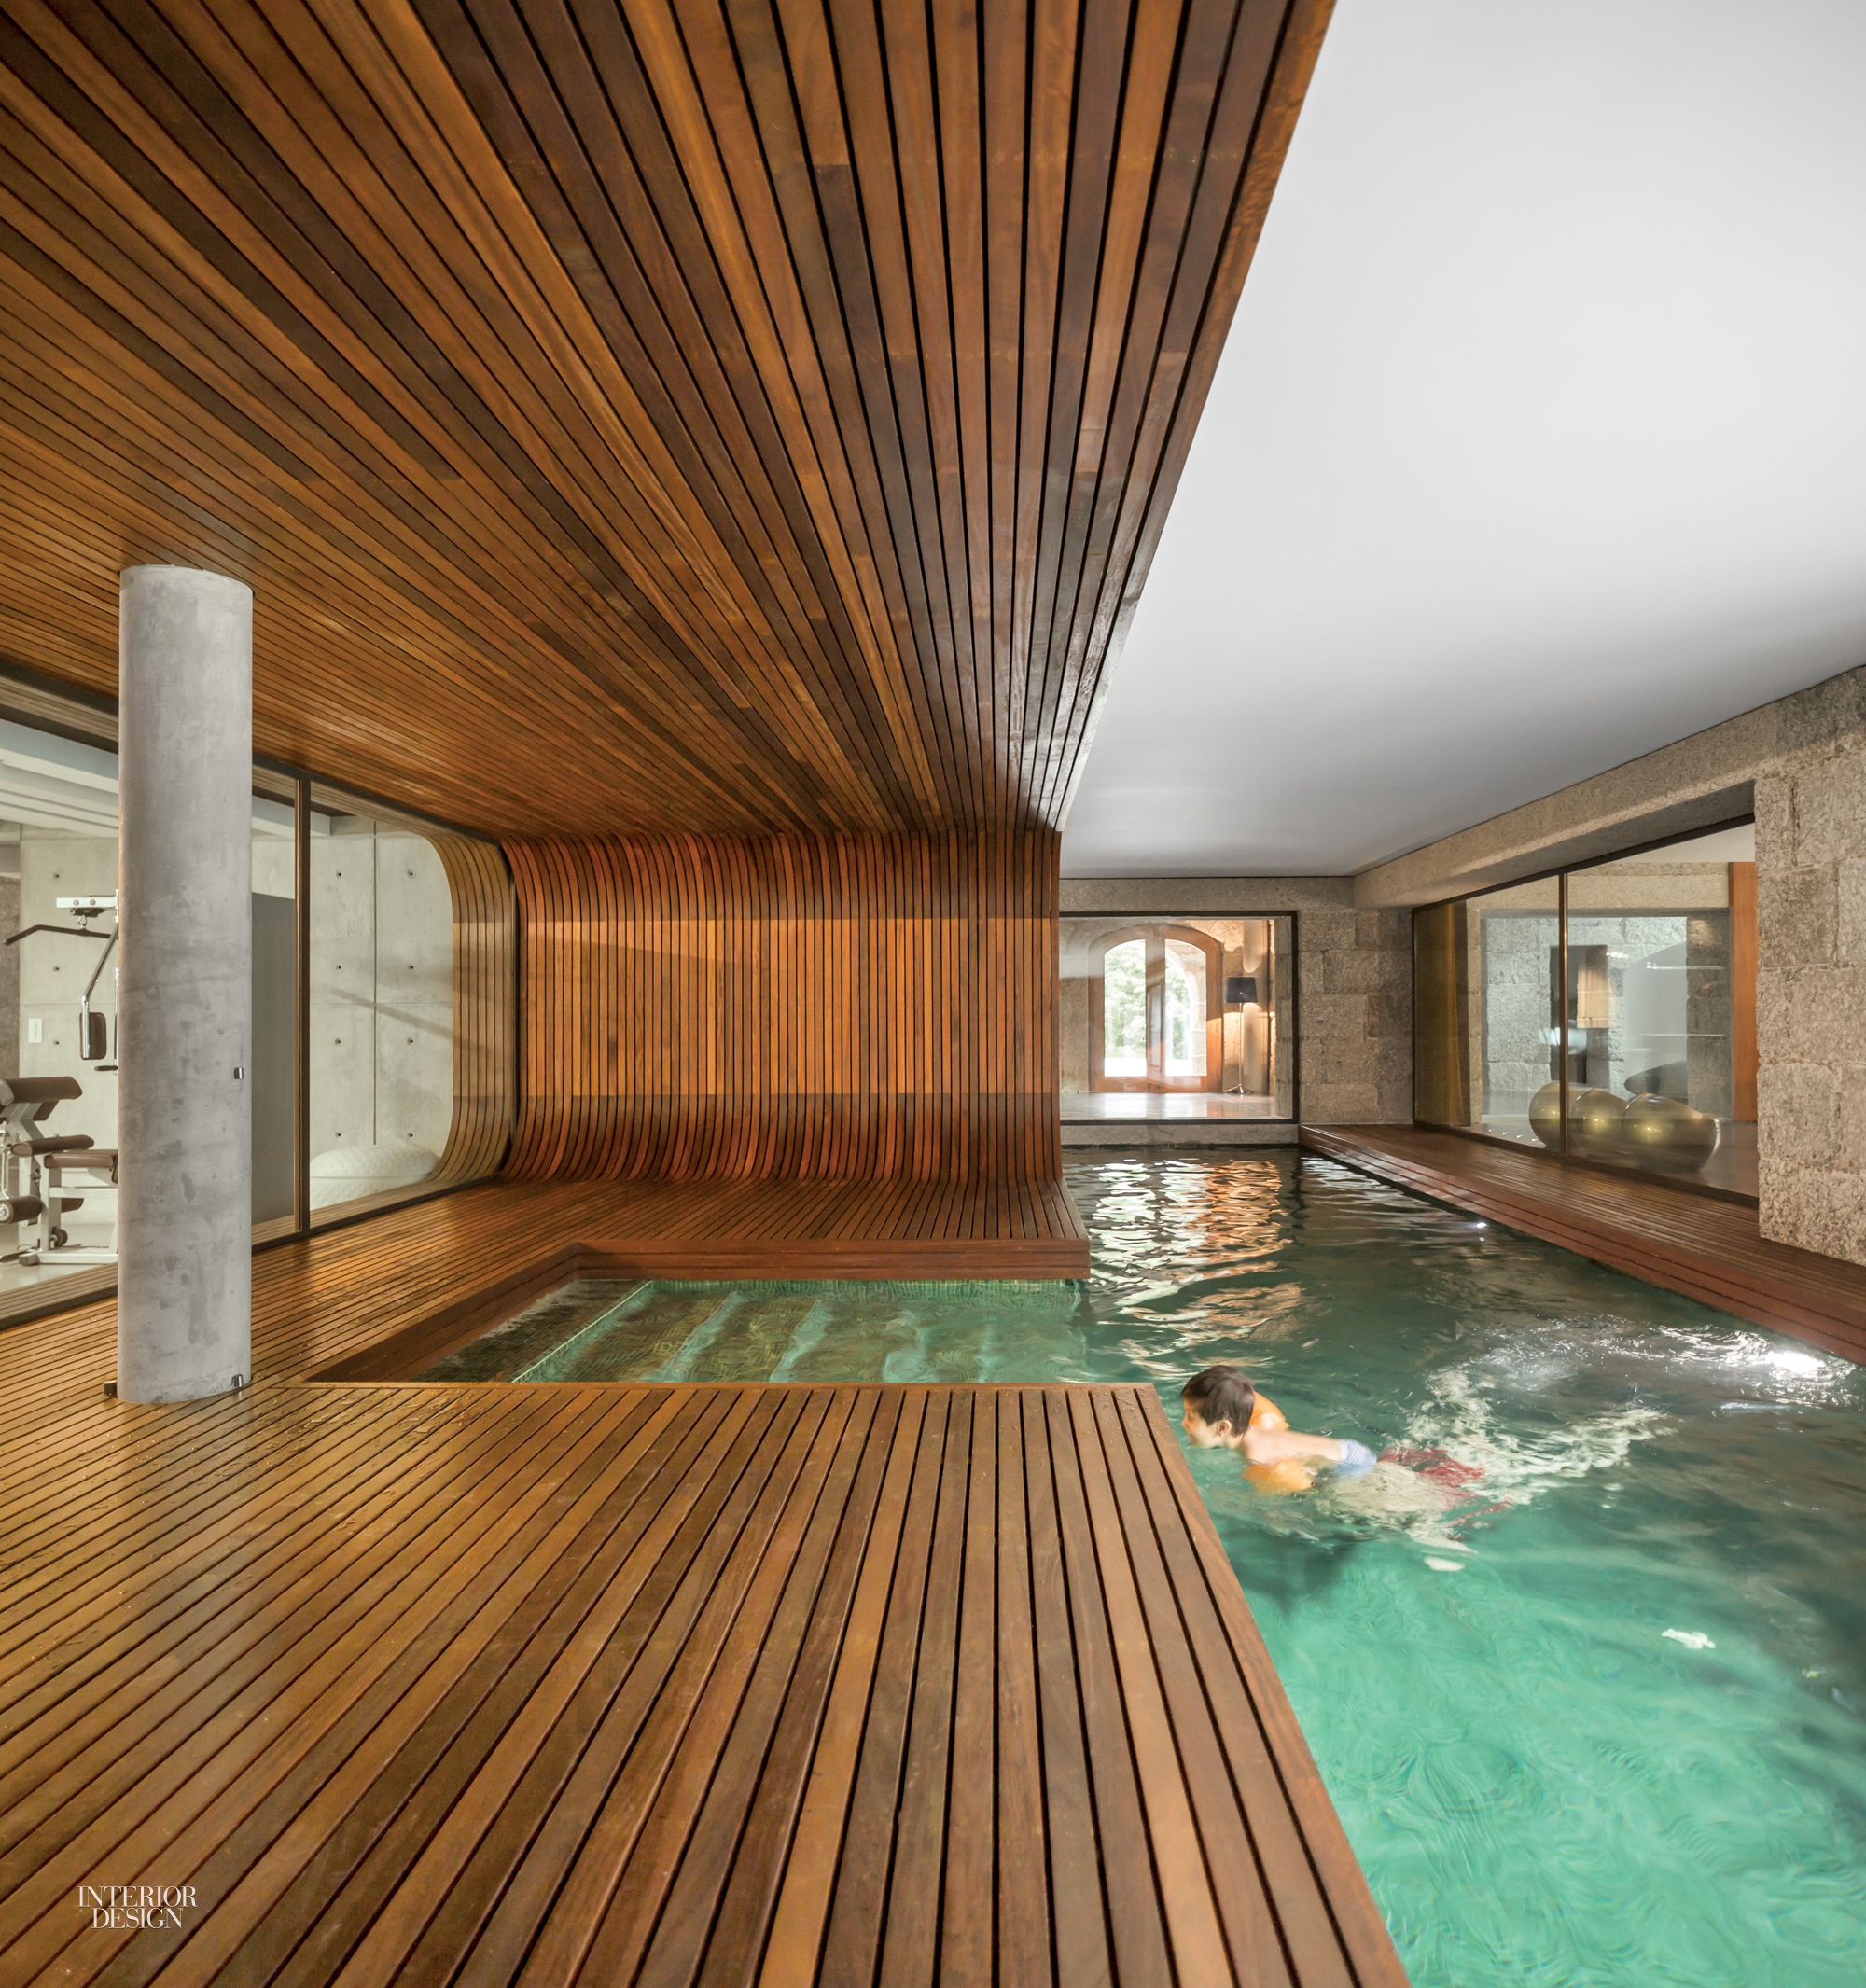 ... Square Feet Under A Renovated 18th Century Farmhouse In Guimarães,  Portugal, To Construct The Separate Pool House, Clad In Iroko Wood And  Mosaic Tile.